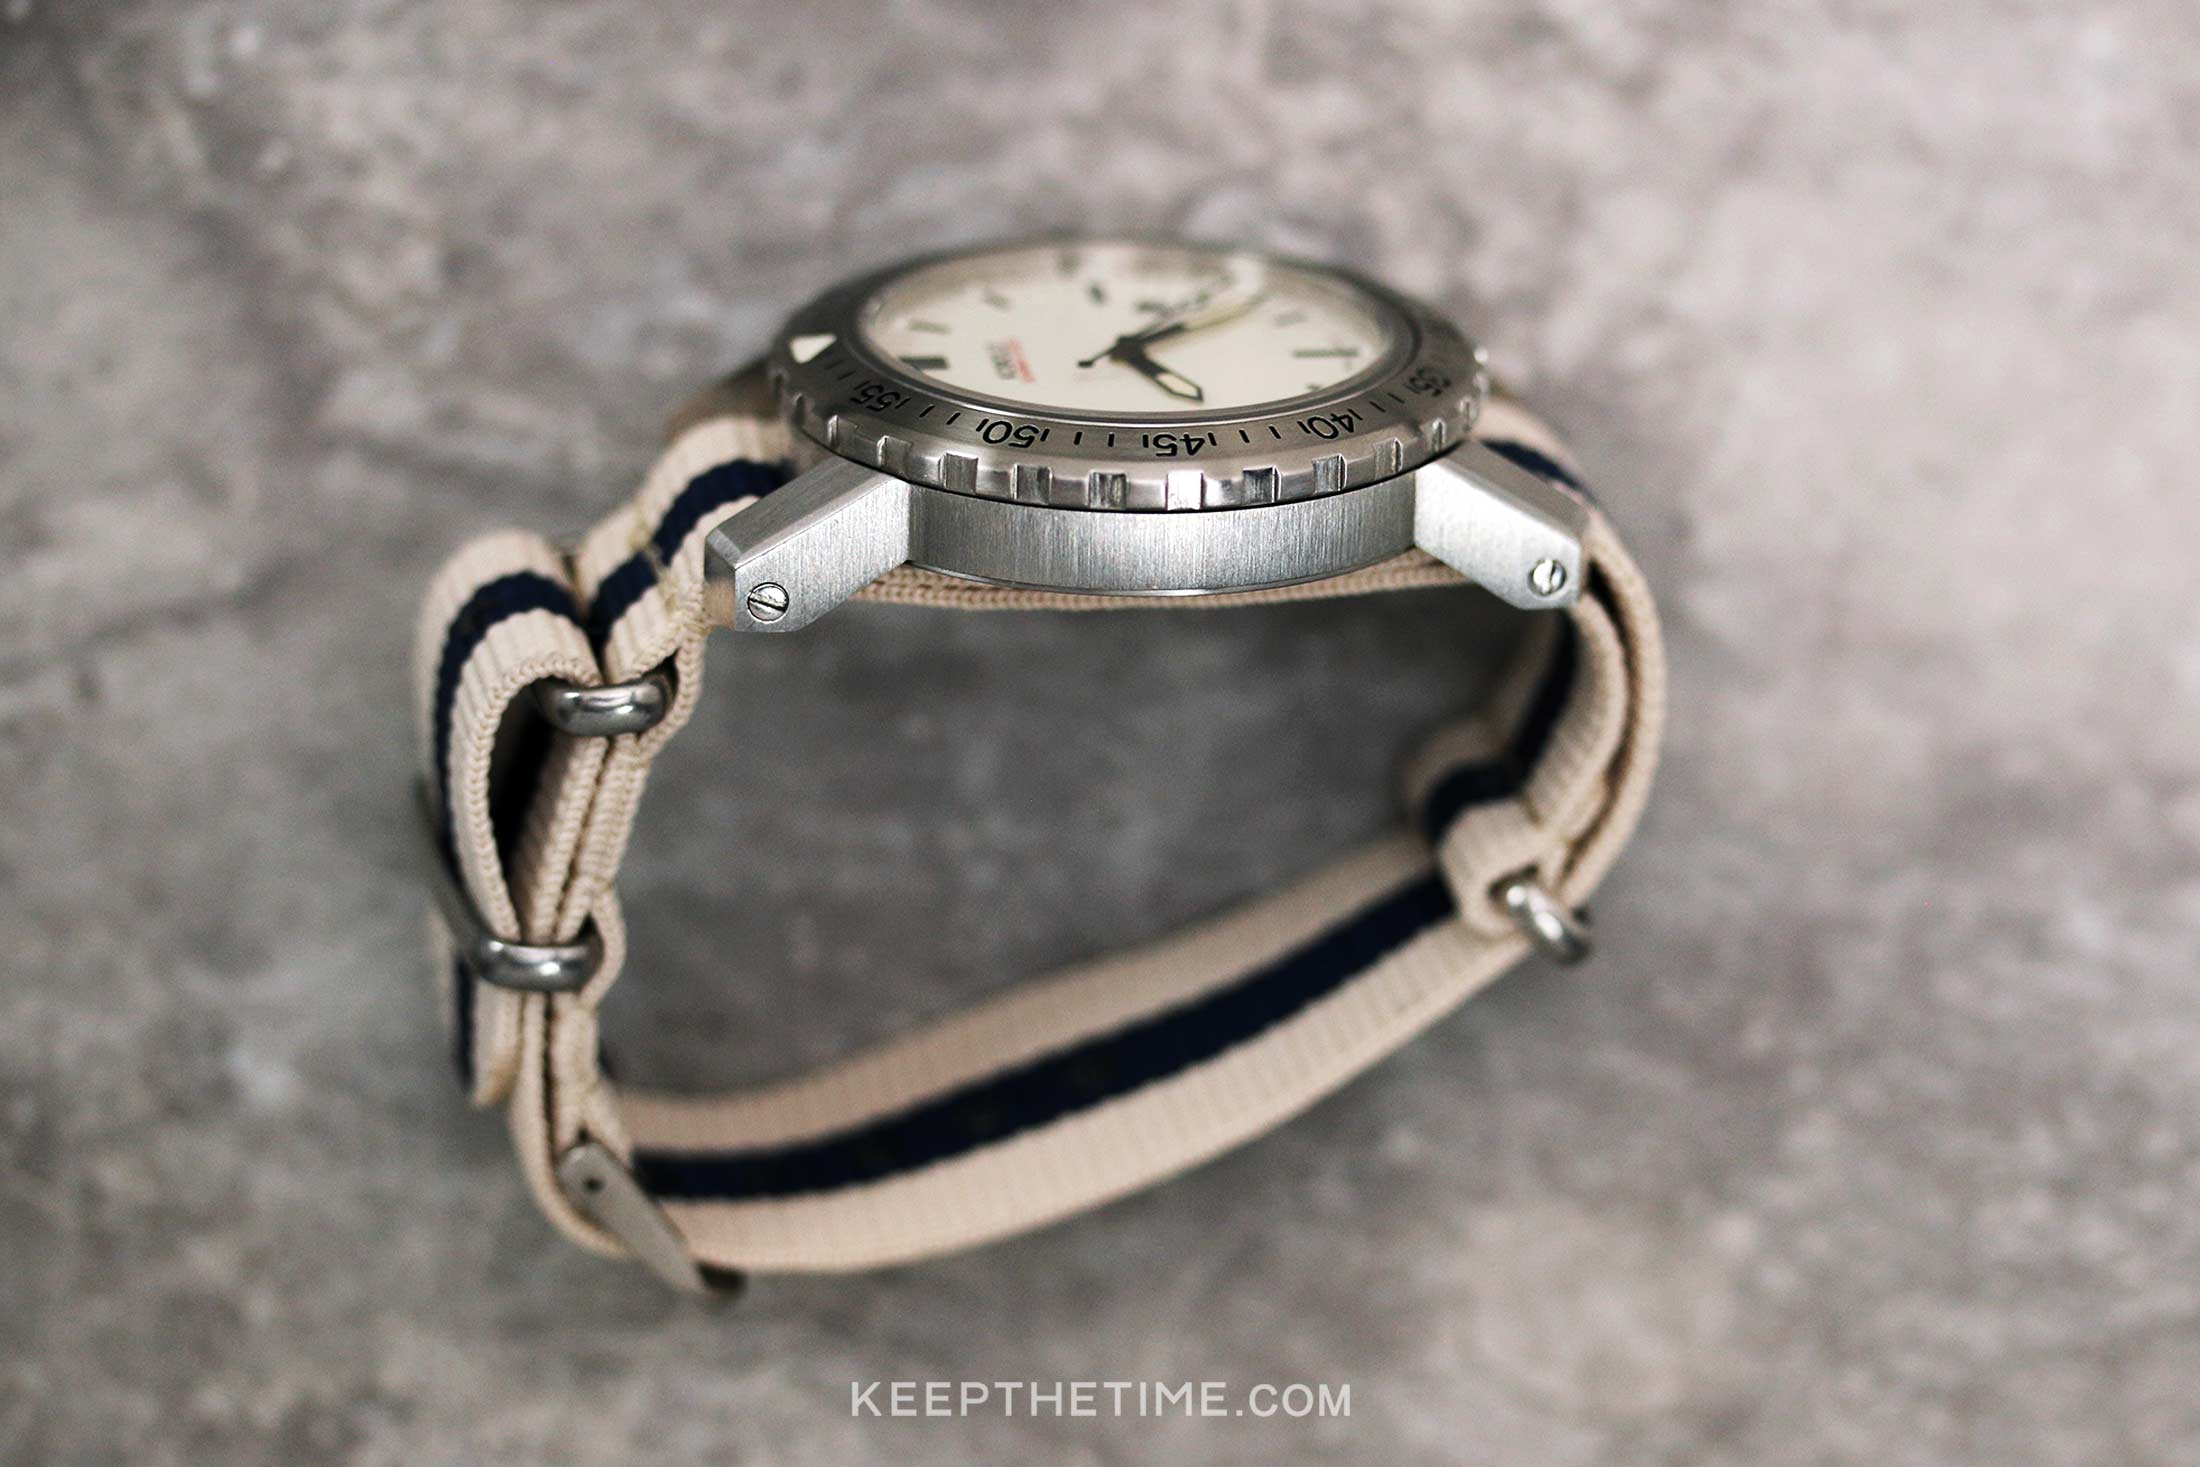 Kobold Classic Soarway Diver Ivory Dial